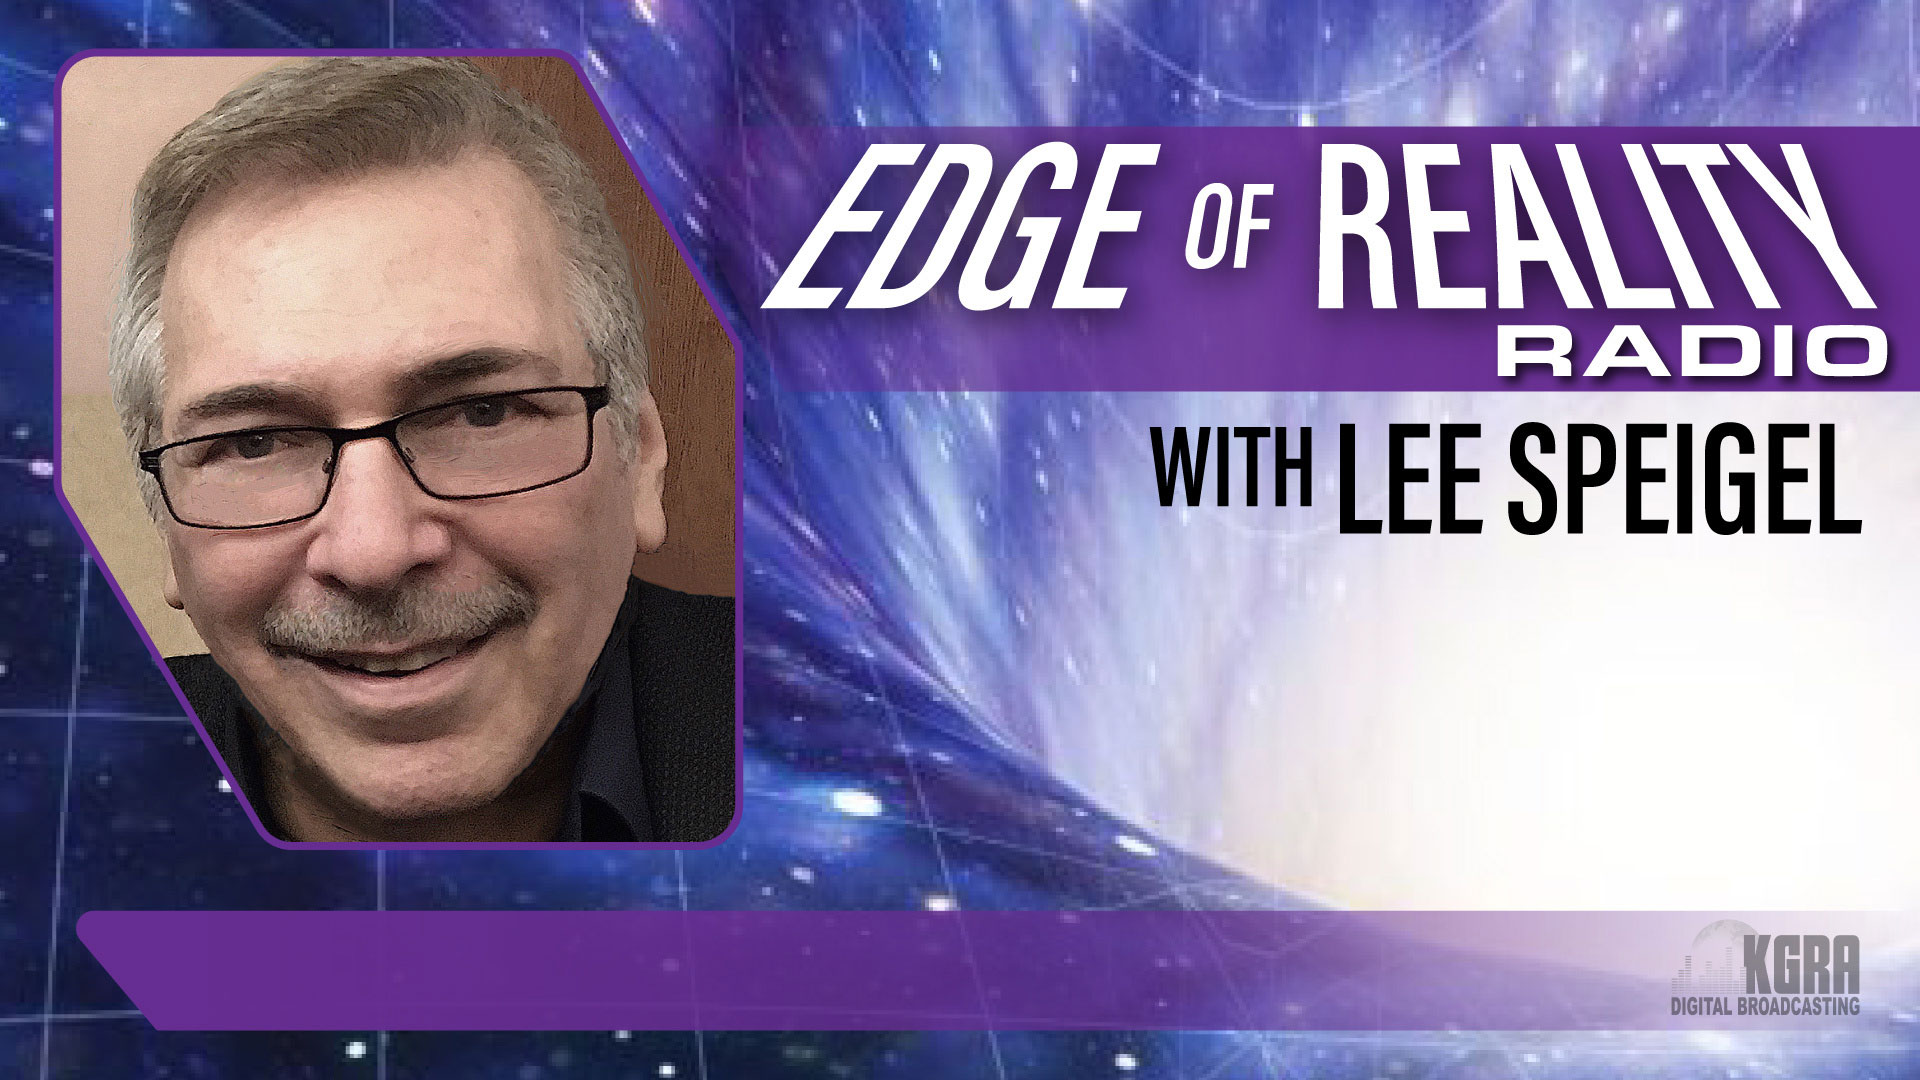 Edge of Reality Radio - Lee Spiegel